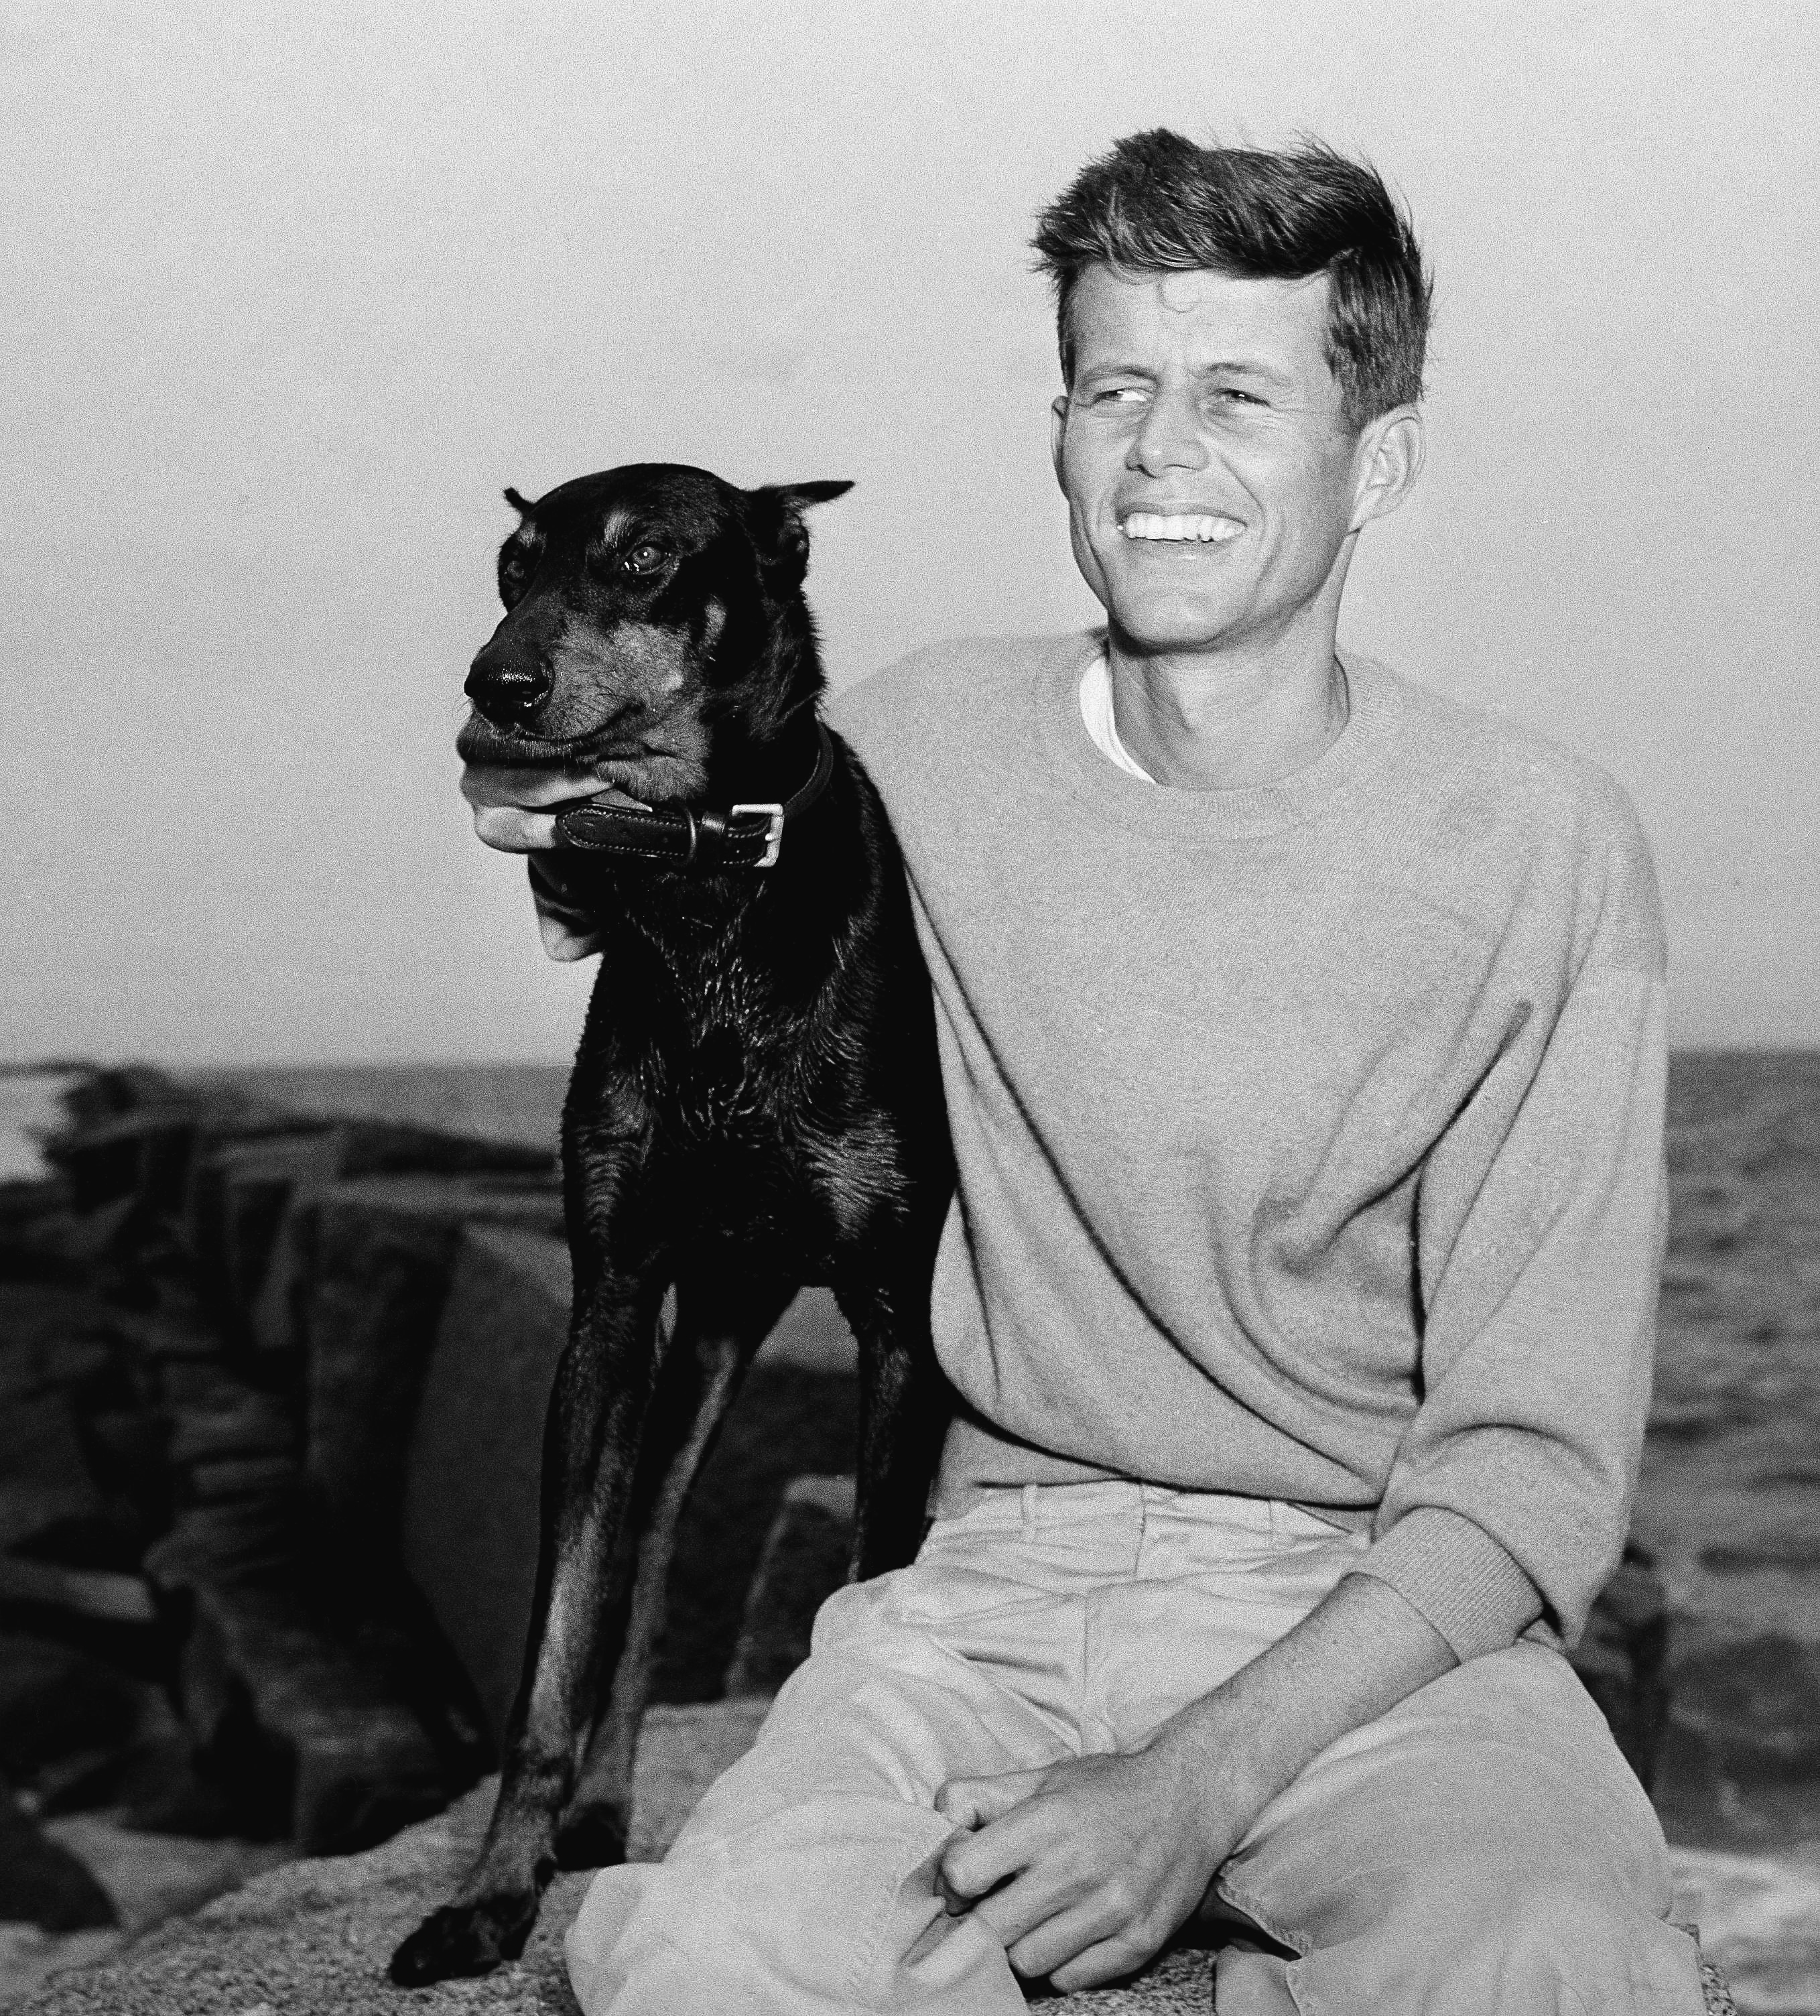 <div class='meta'><div class='origin-logo' data-origin='none'></div><span class='caption-text' data-credit='AP Photo/Peter J. Carroll'>John F. Kennedy, winner of the Democratic Nomination for Congress in the 11th Massachusetts District, relaxes with his dog, Mo, June 22, 1946, Hyannisport, Mass.</span></div>